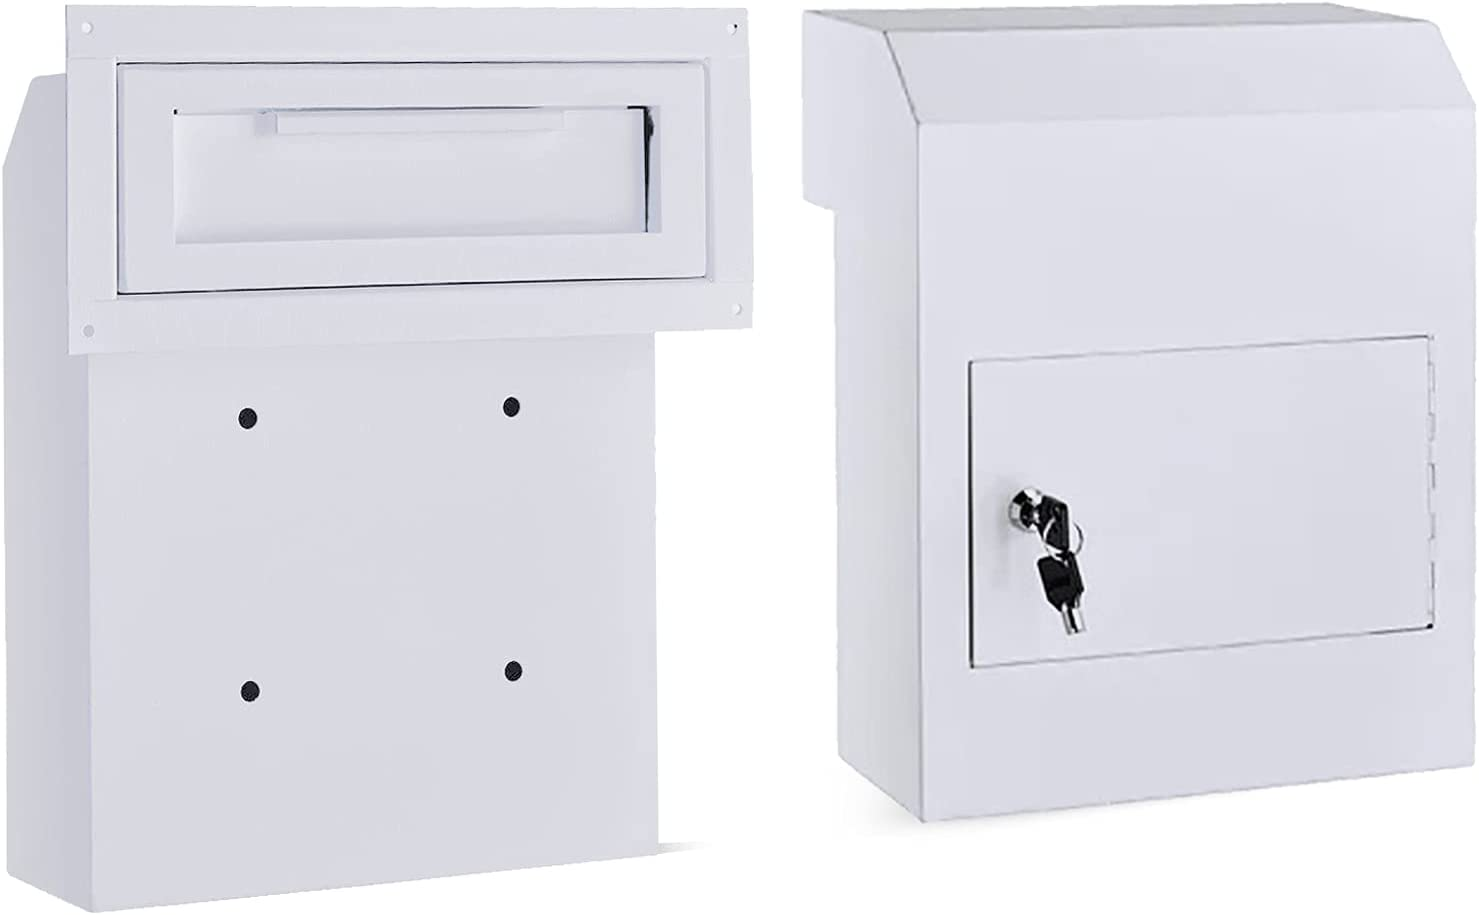 Drop Box Mail Slots for Doors Key Drop Box Drop Boxes with Lock for Business with Rustproof Mailbox Anti Theft Lock Easy to Put Documents in Safe Dropbox for Cash Money Home Office Garage Color Grey